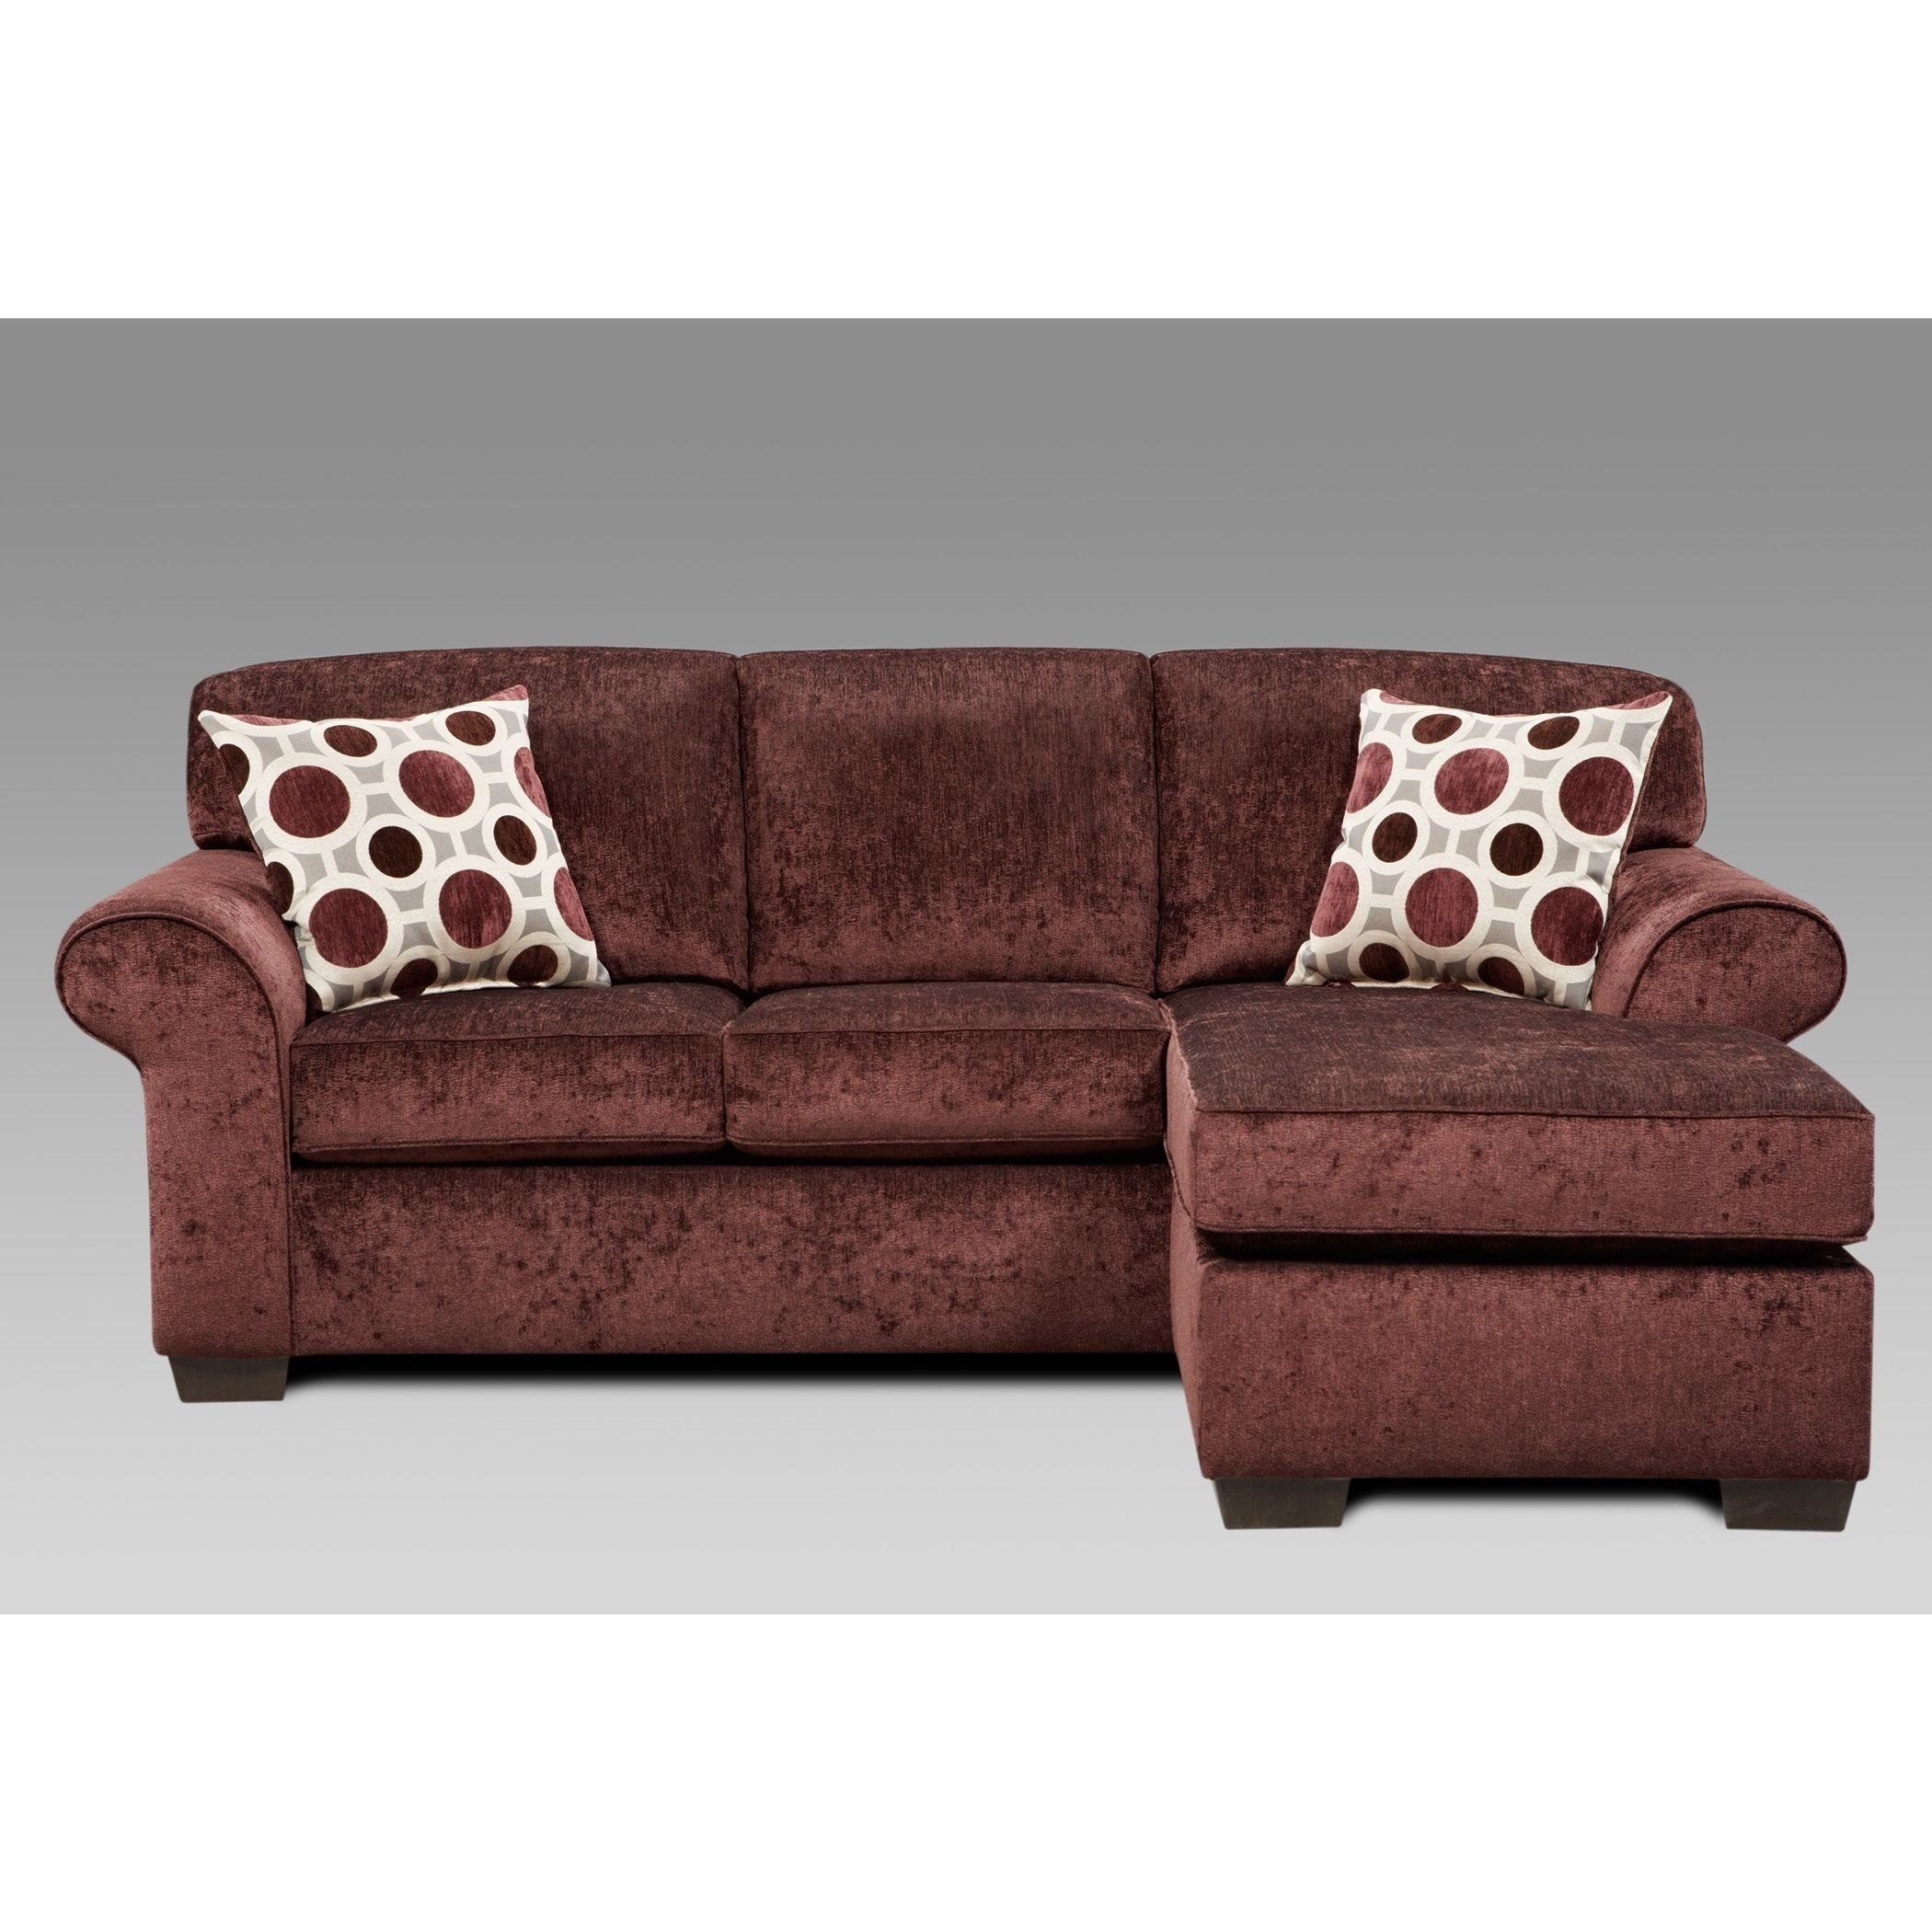 Fabric Sectional Sofa with 2 Pillows Prism Elderberry Sofa Purple